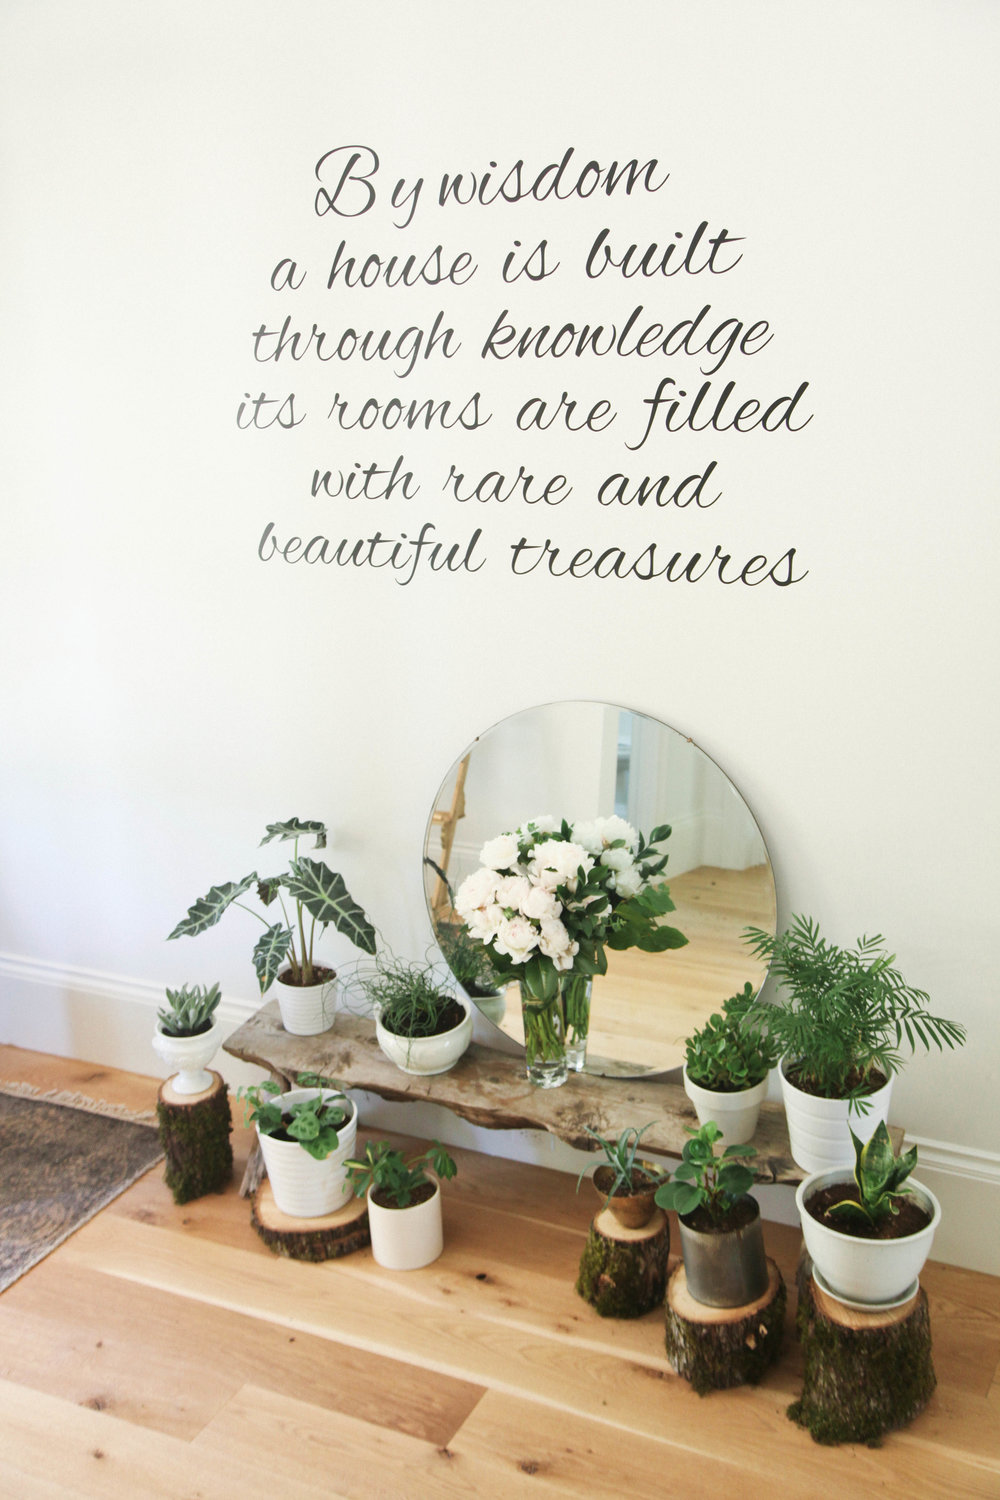 entry quote.jpg